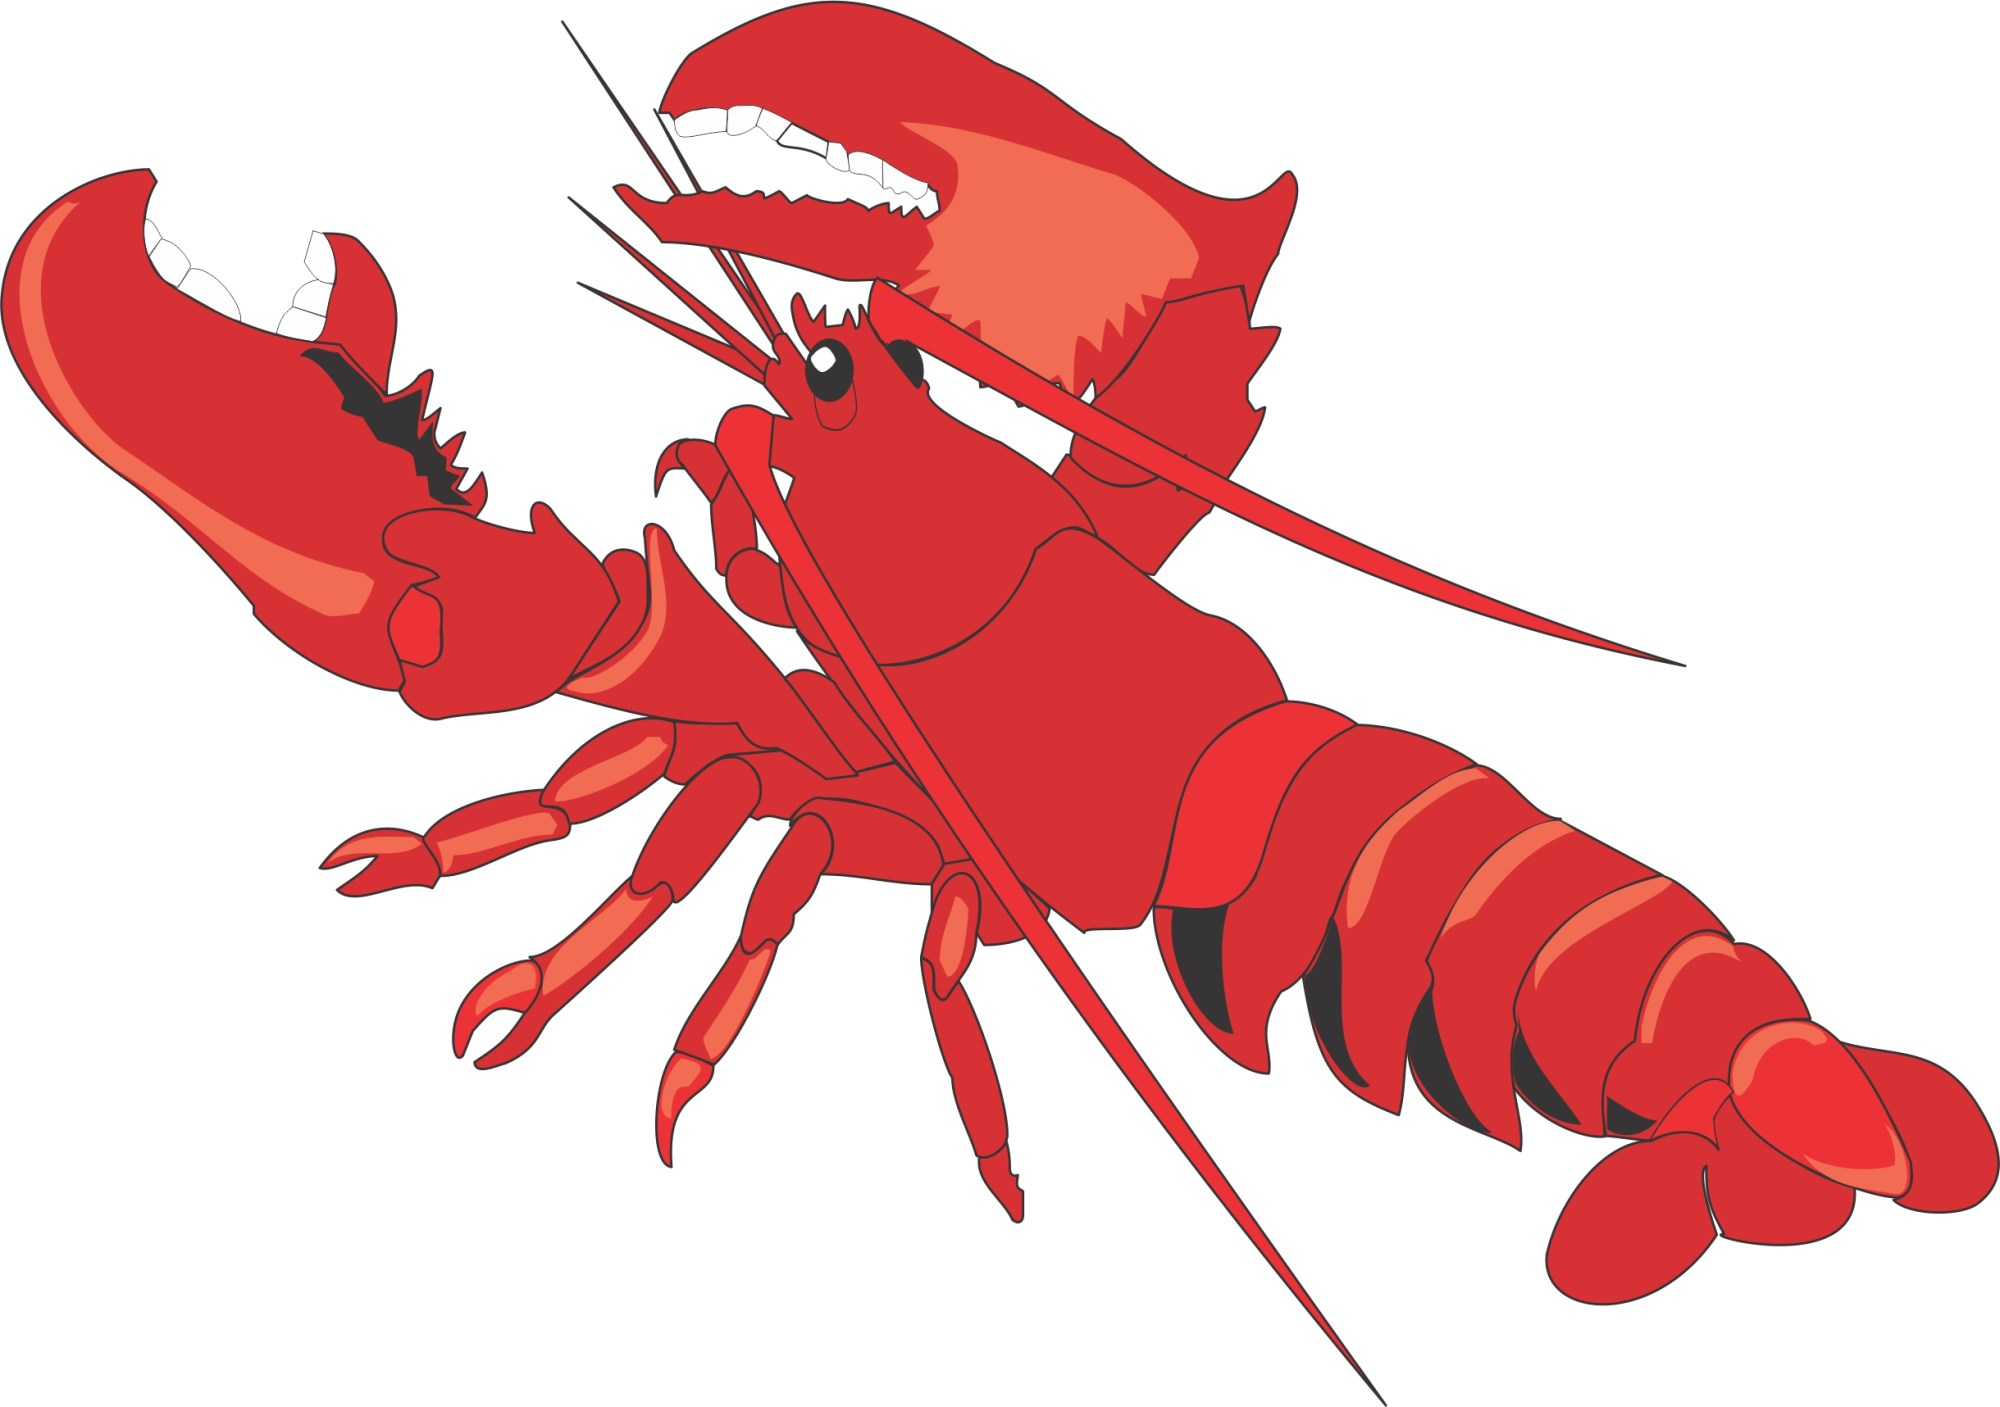 hight resolution of cartoon crawfish clipart cliparts and others art inspiration